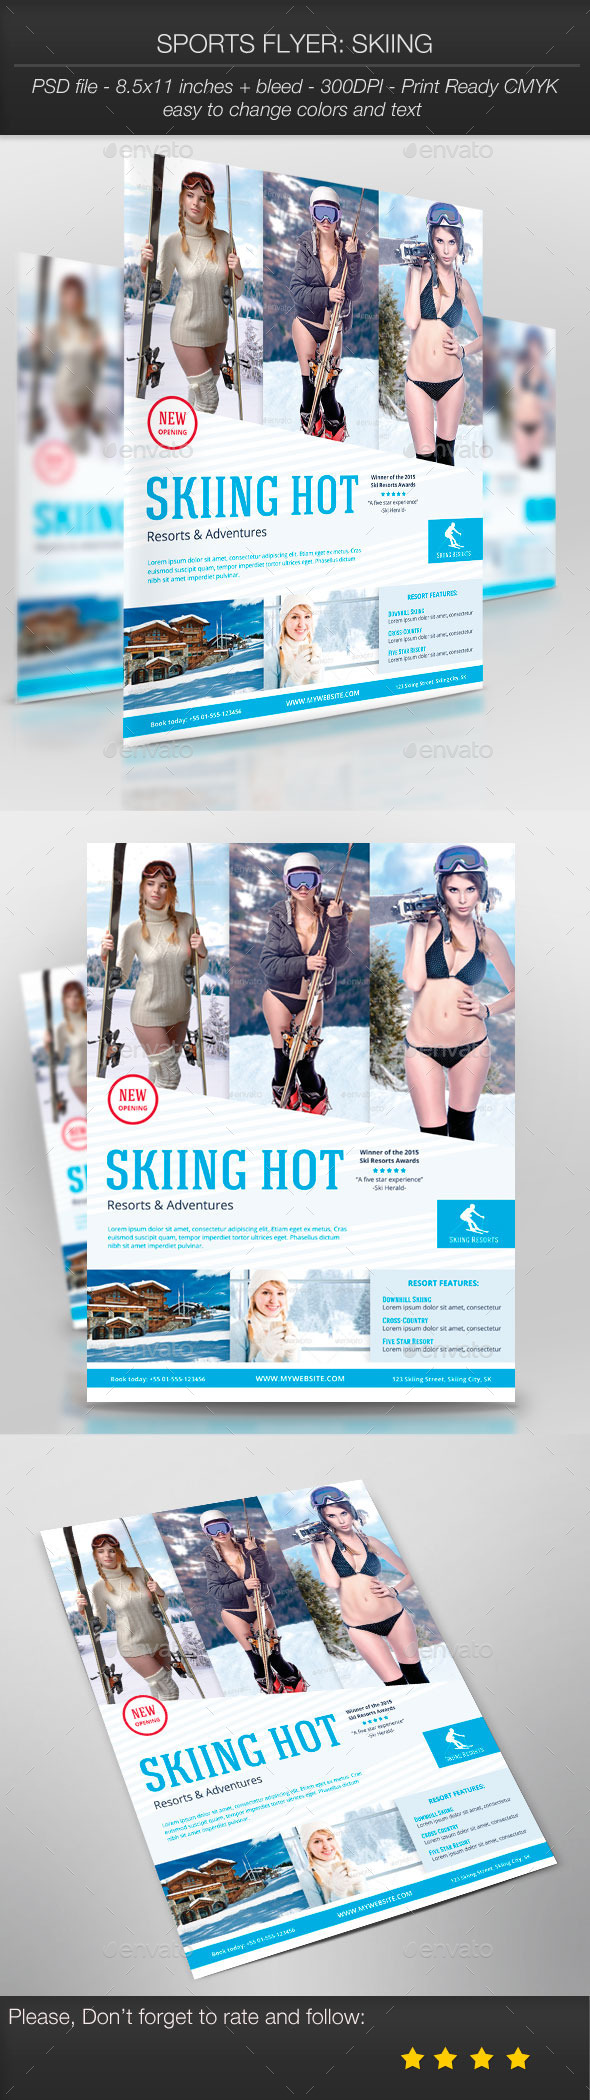 Sports Flyer: Skiing - Sports Events